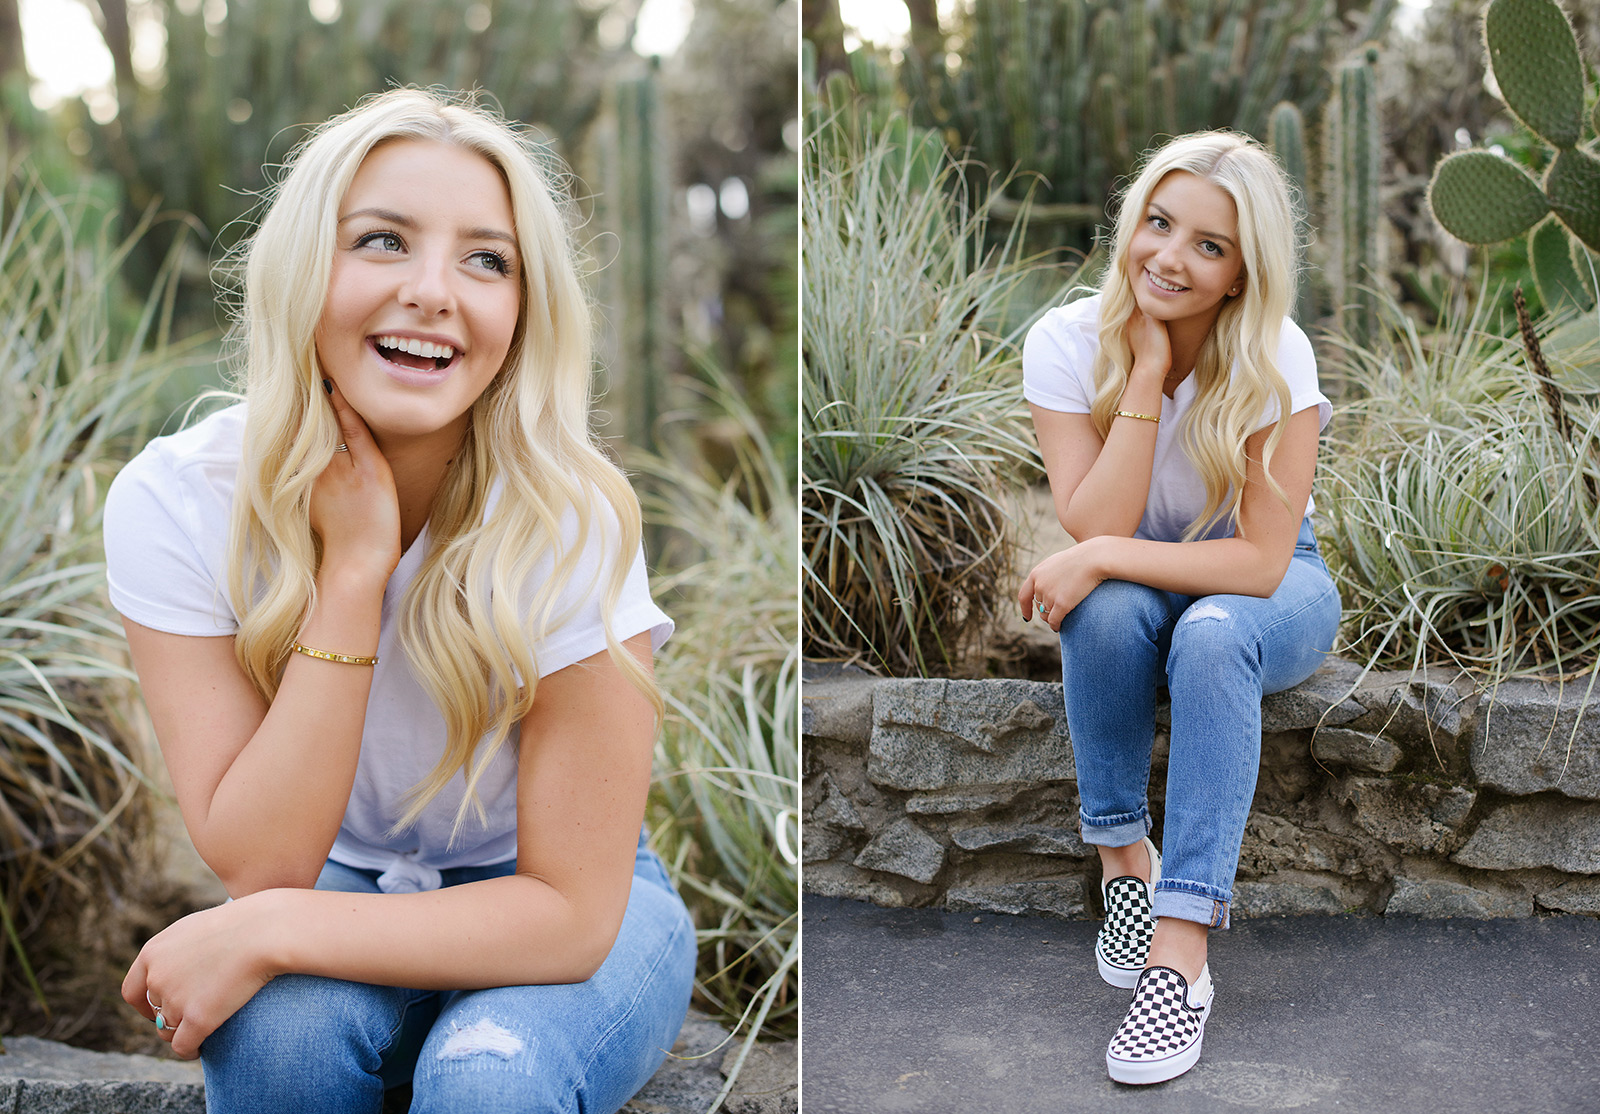 Senior portrait of blonde girl in jeans and sneakers sitting down at State Capitol outdoor cactus